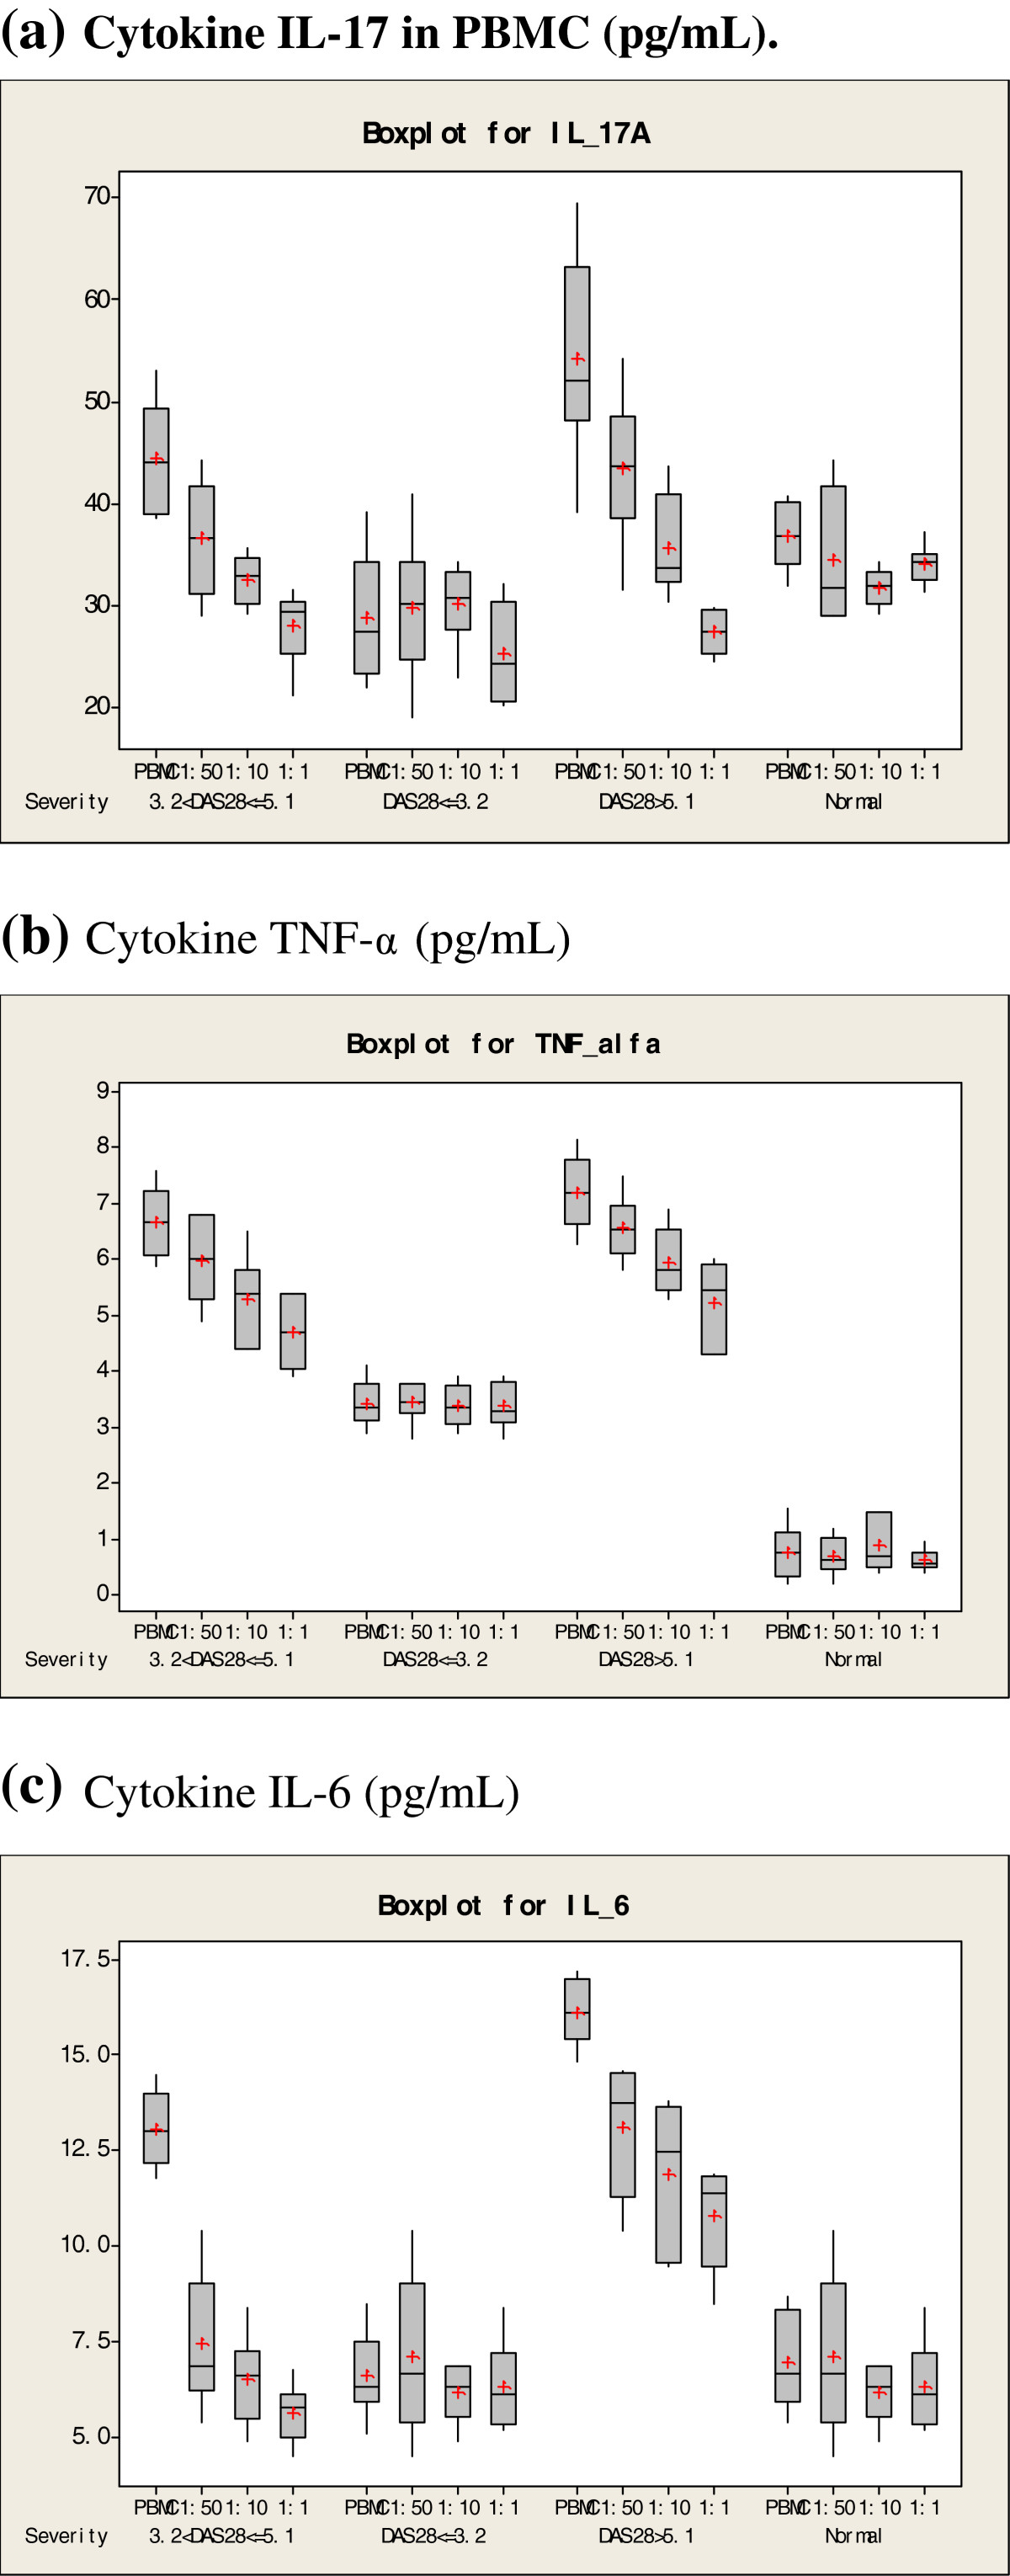 https://static-content.springer.com/image/art%3A10.1186%2F1471-2474-13-249/MediaObjects/12891_2011_Article_1571_Fig3_HTML.jpg